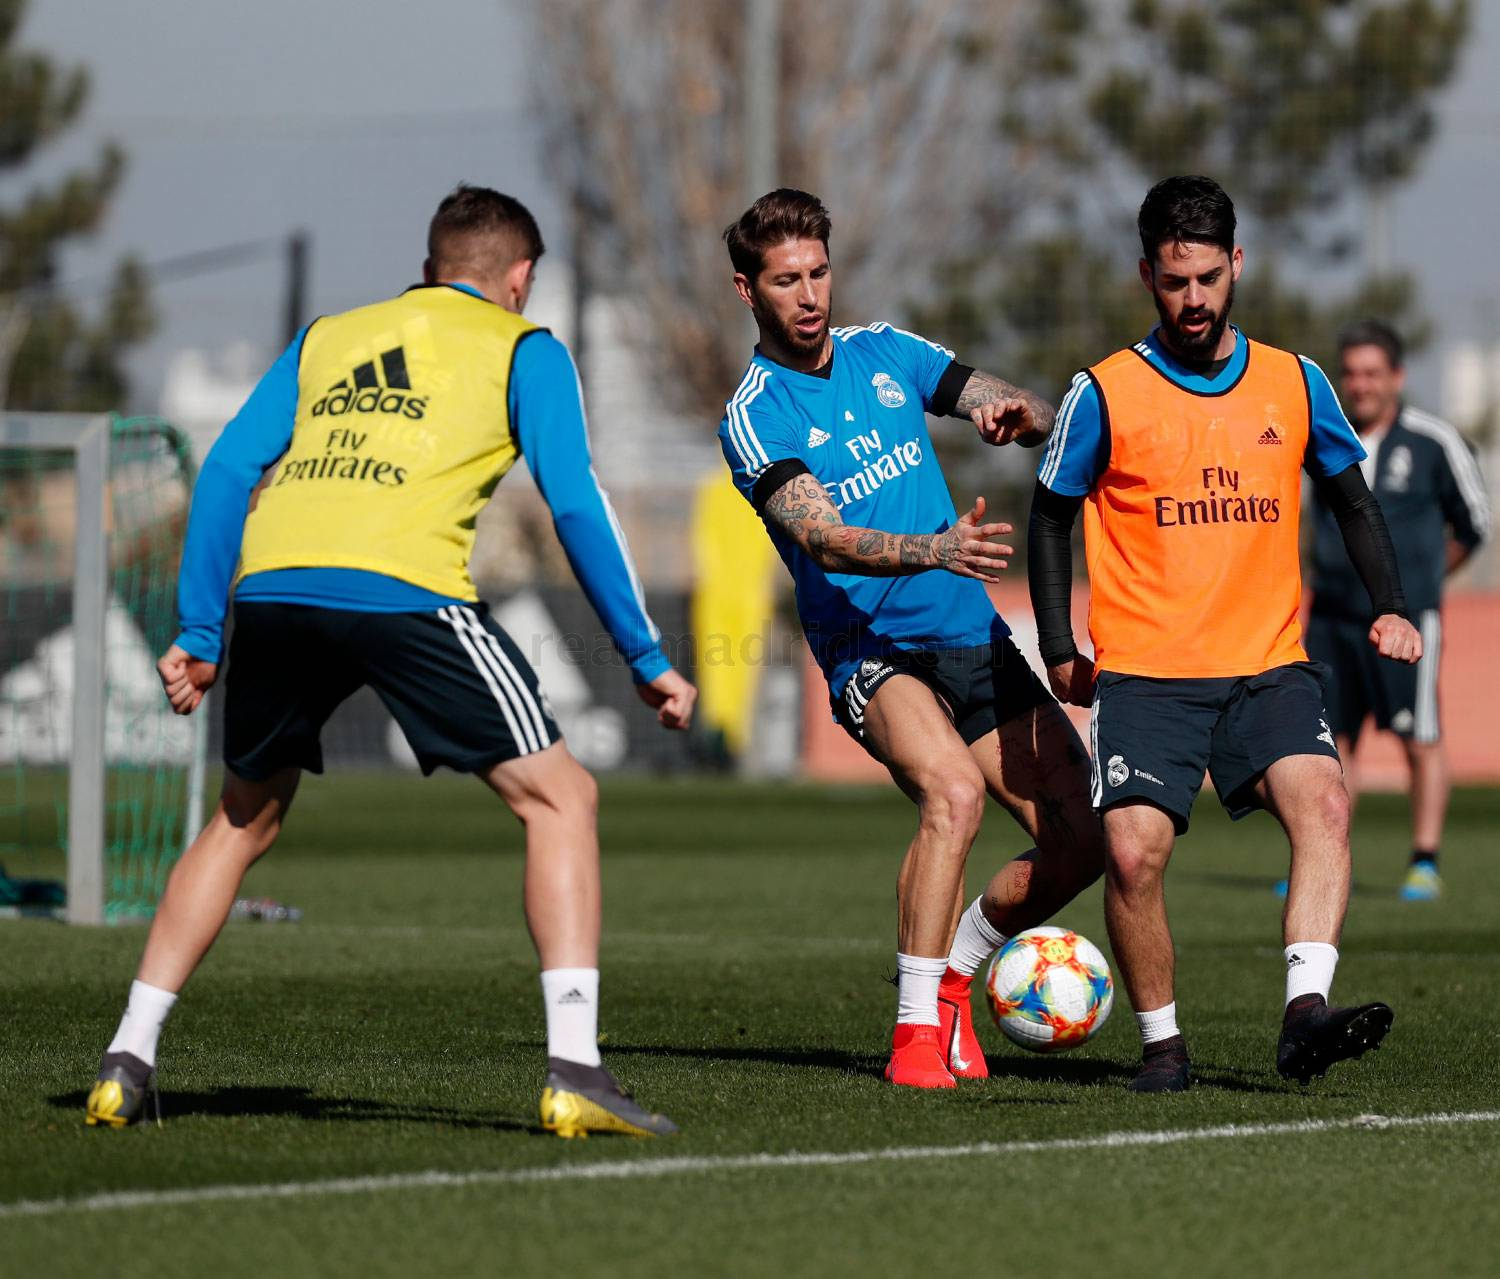 Real Madrid - Entrenamiento del Real Madrid - 25-02-2019